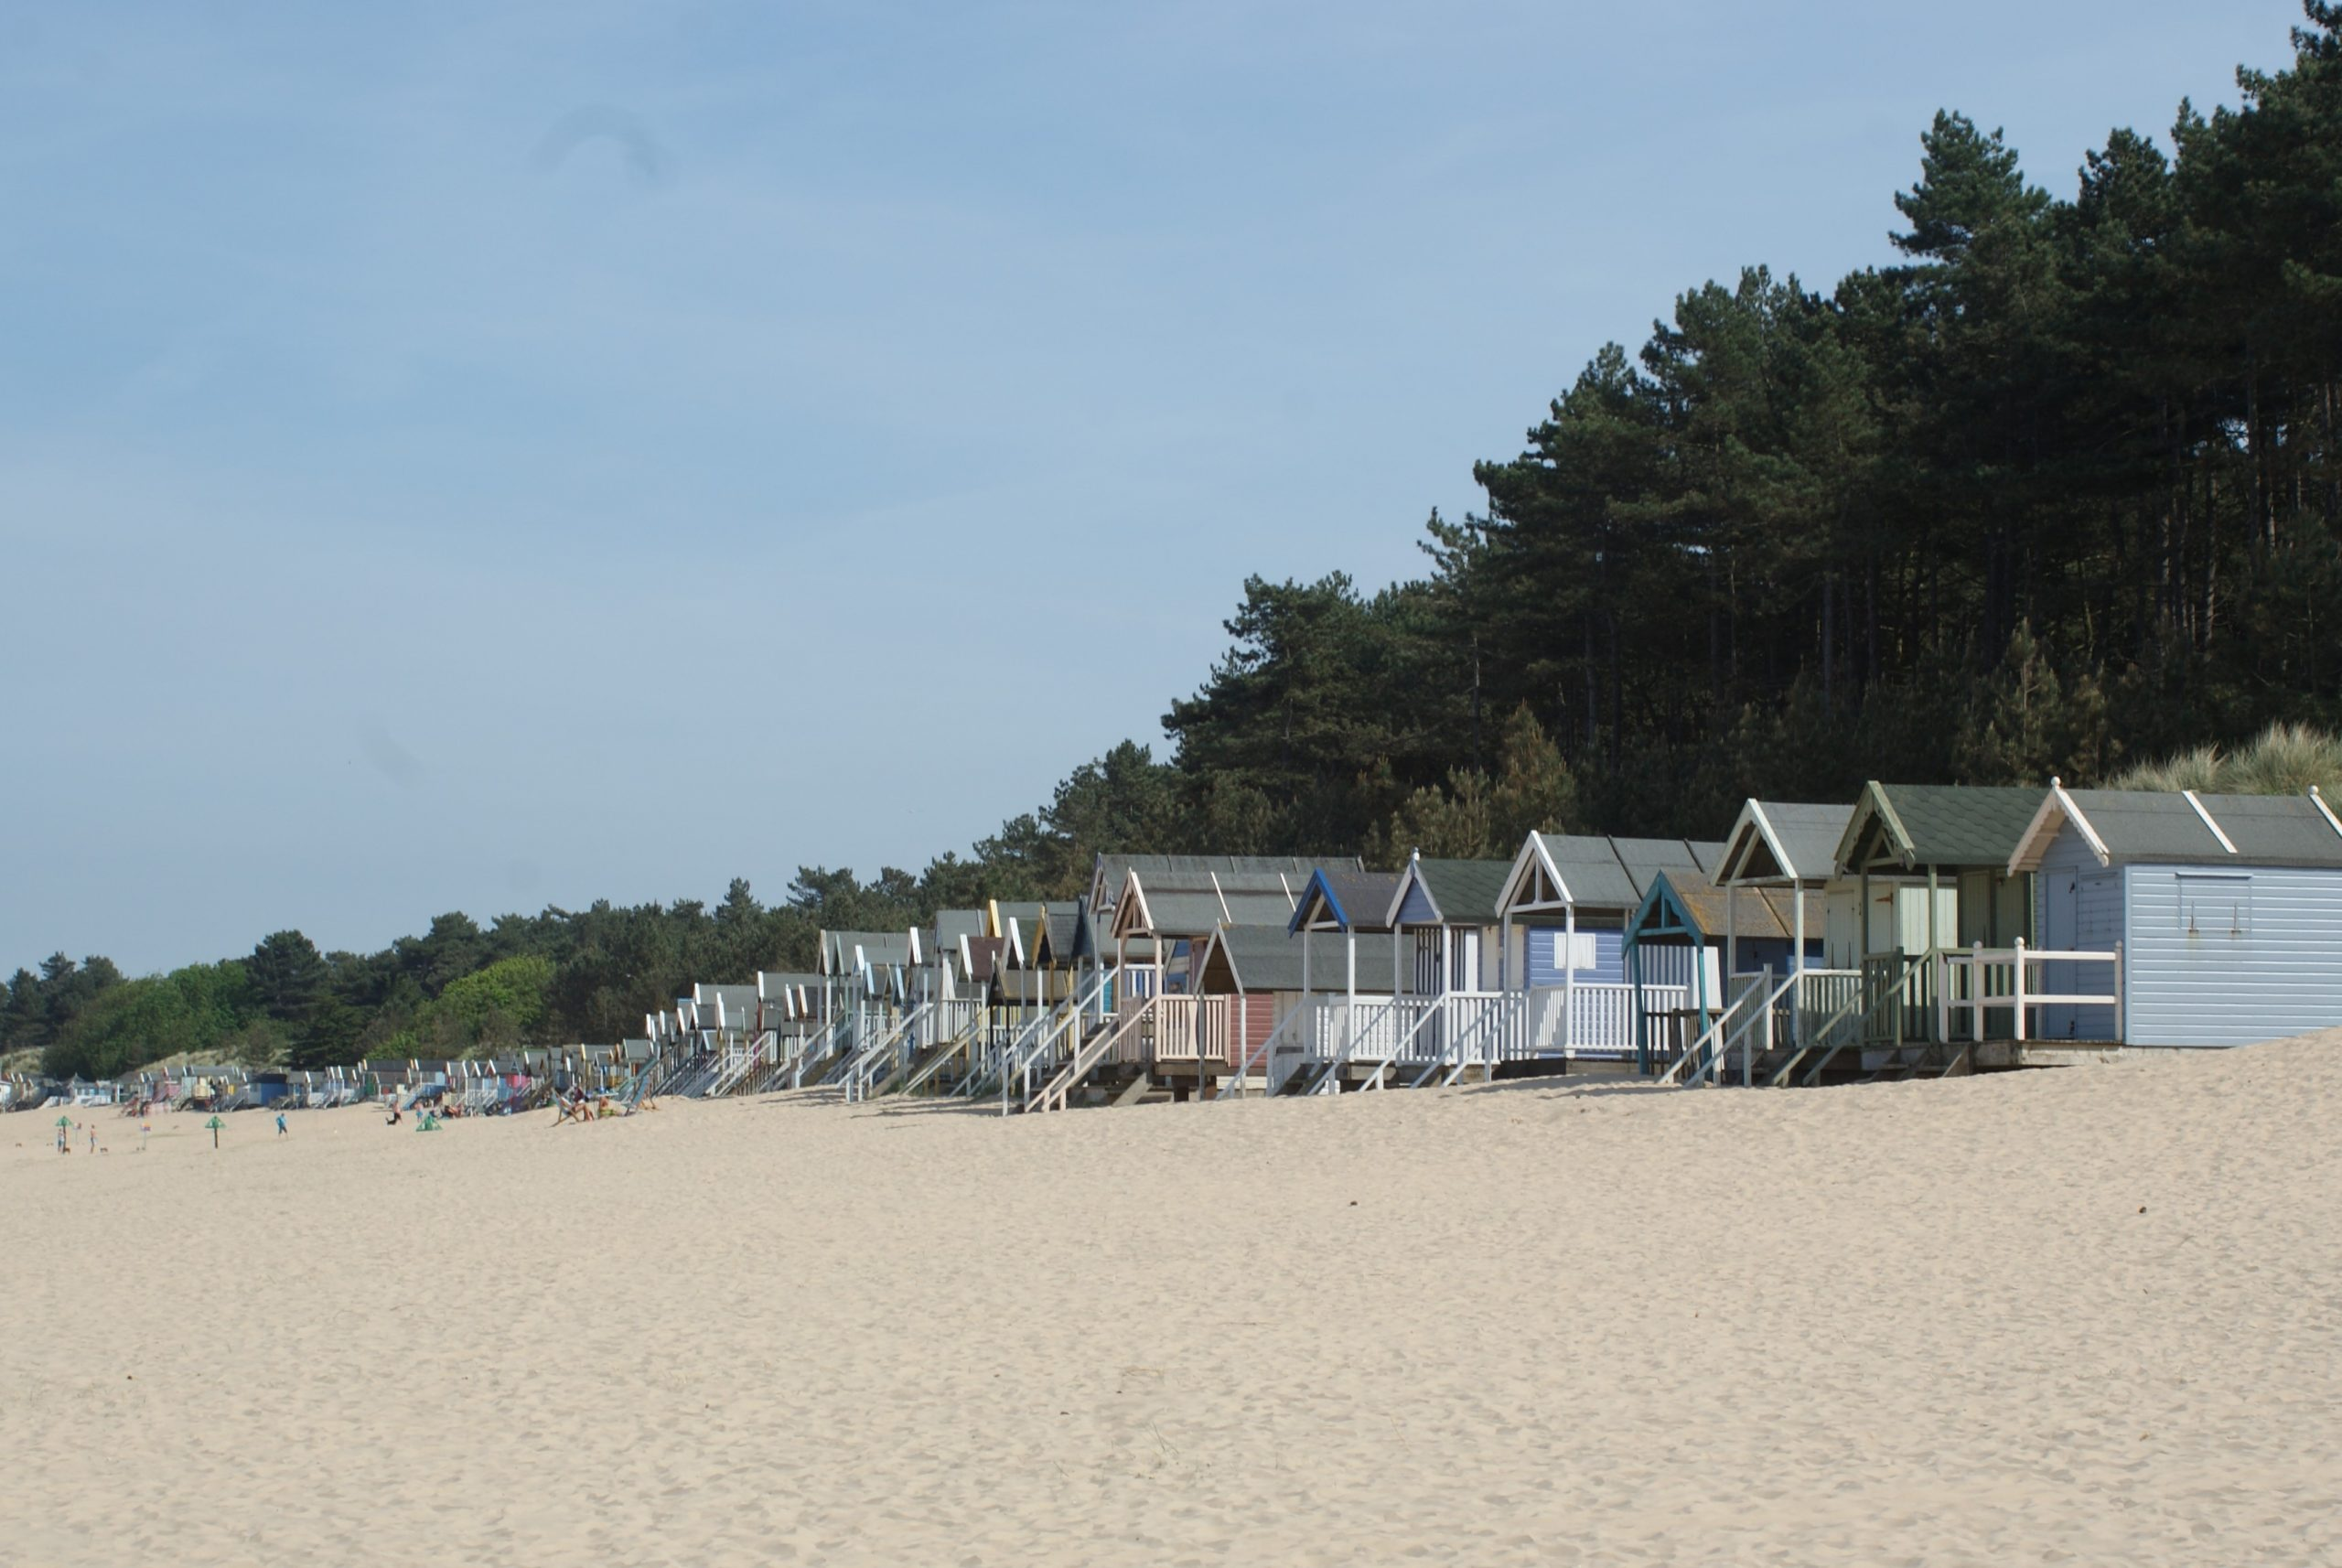 Wells-next-the-sea East Anglia